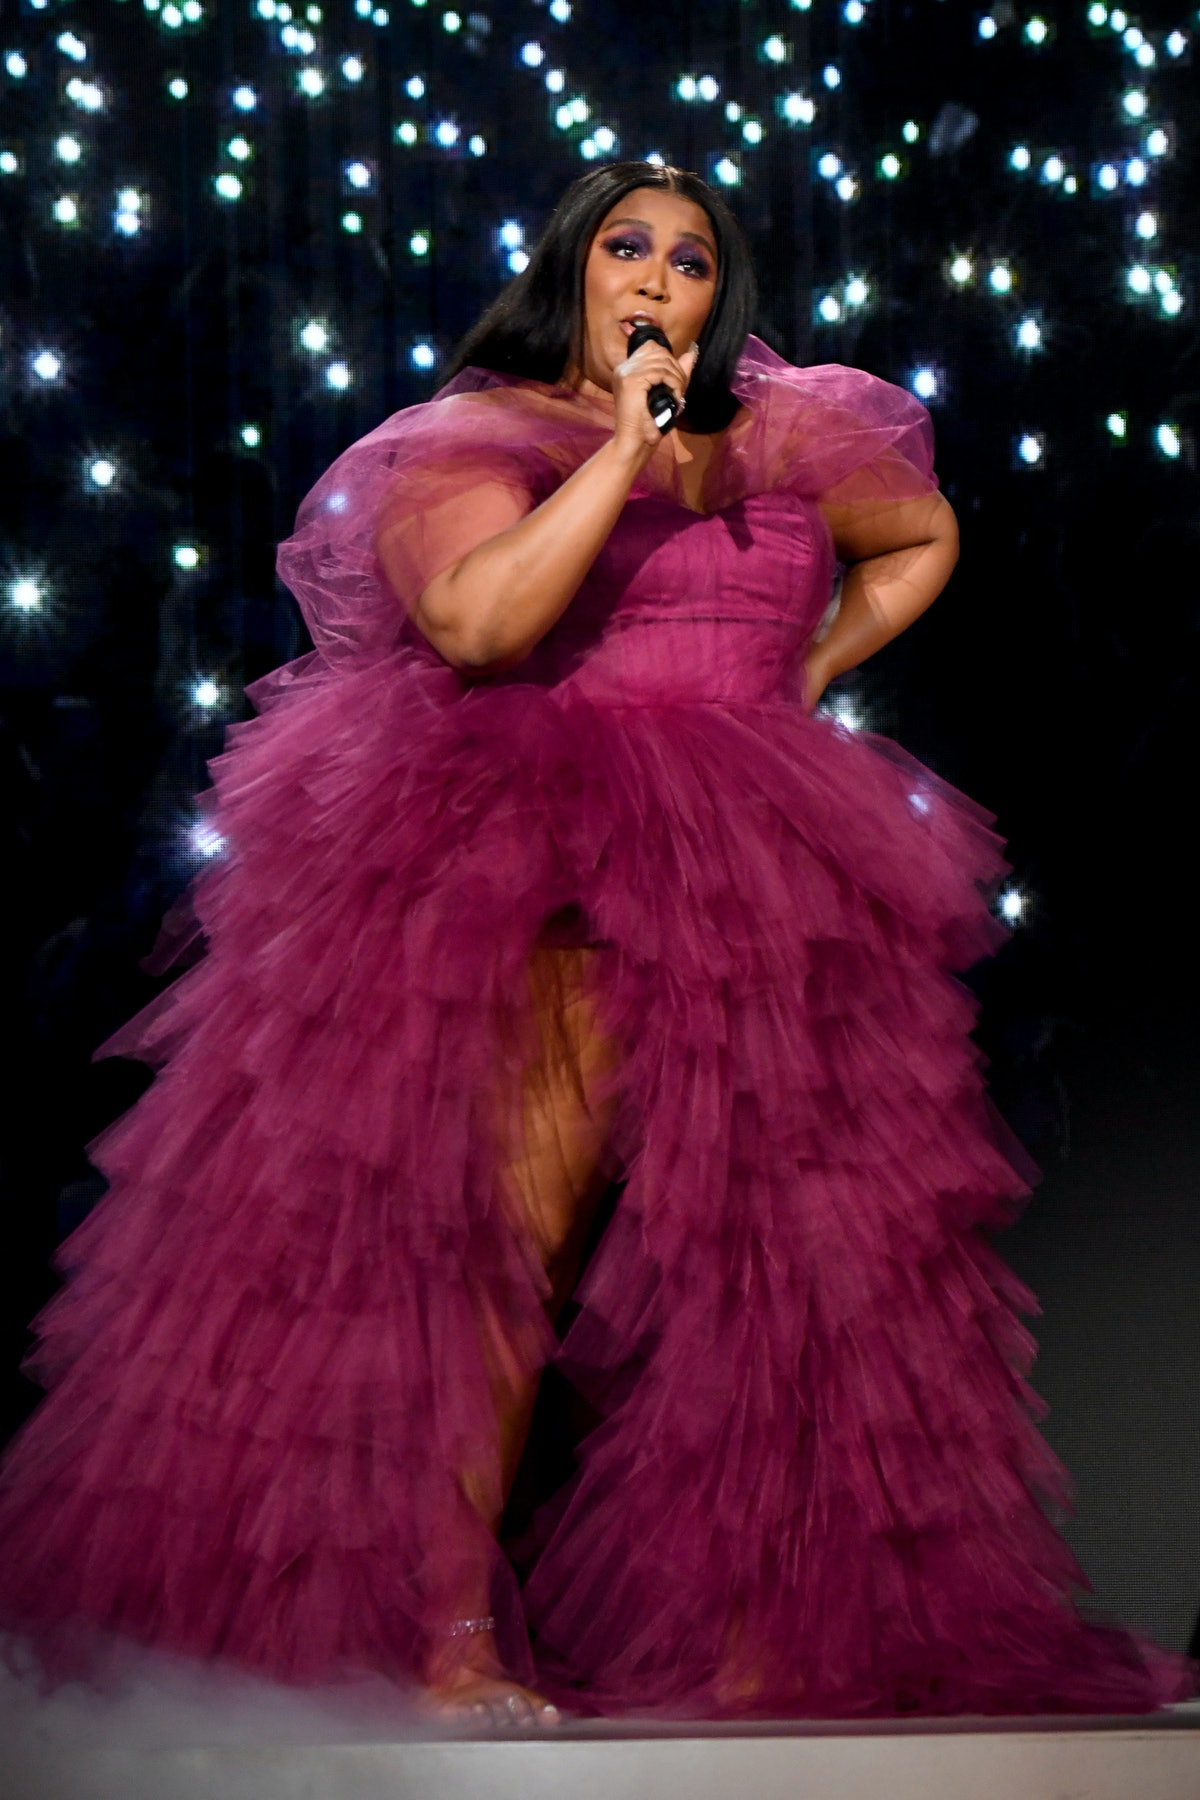 Lizzo performing in a burgundy gown.